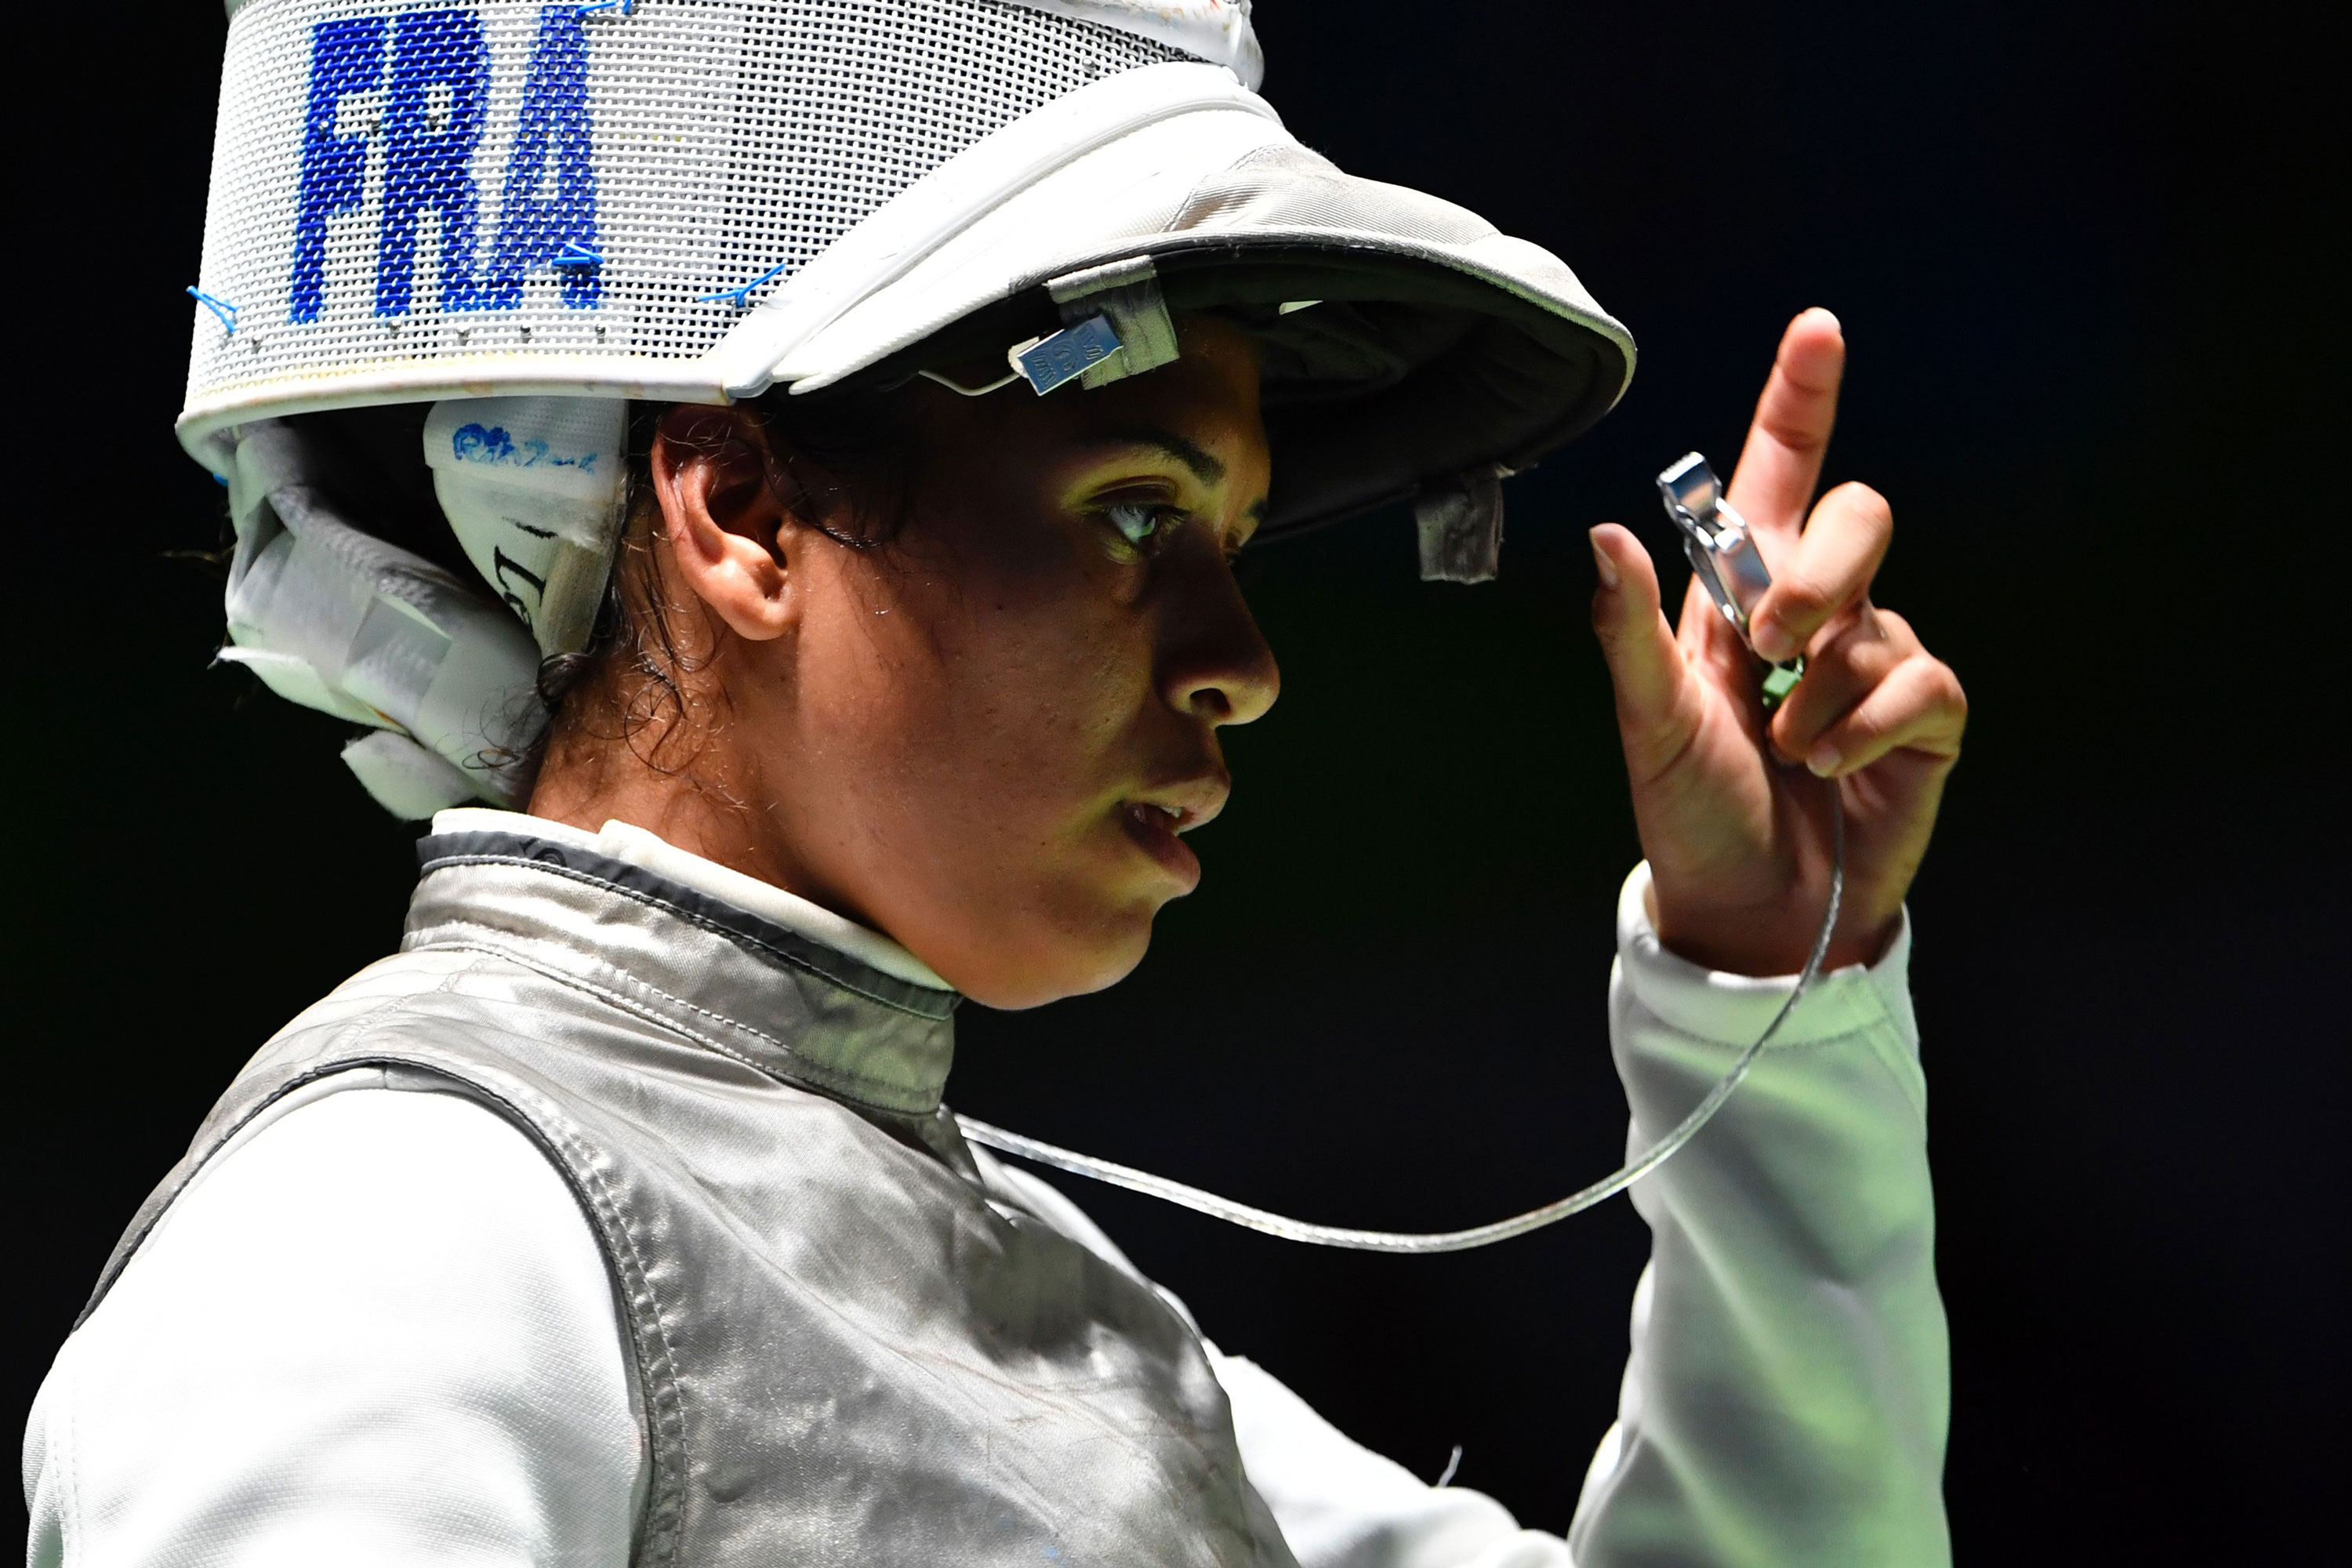 Olympic fencer Ysaora Thibus: 'I'm an athlete, but first I'm a woman, I'm a Black woman'